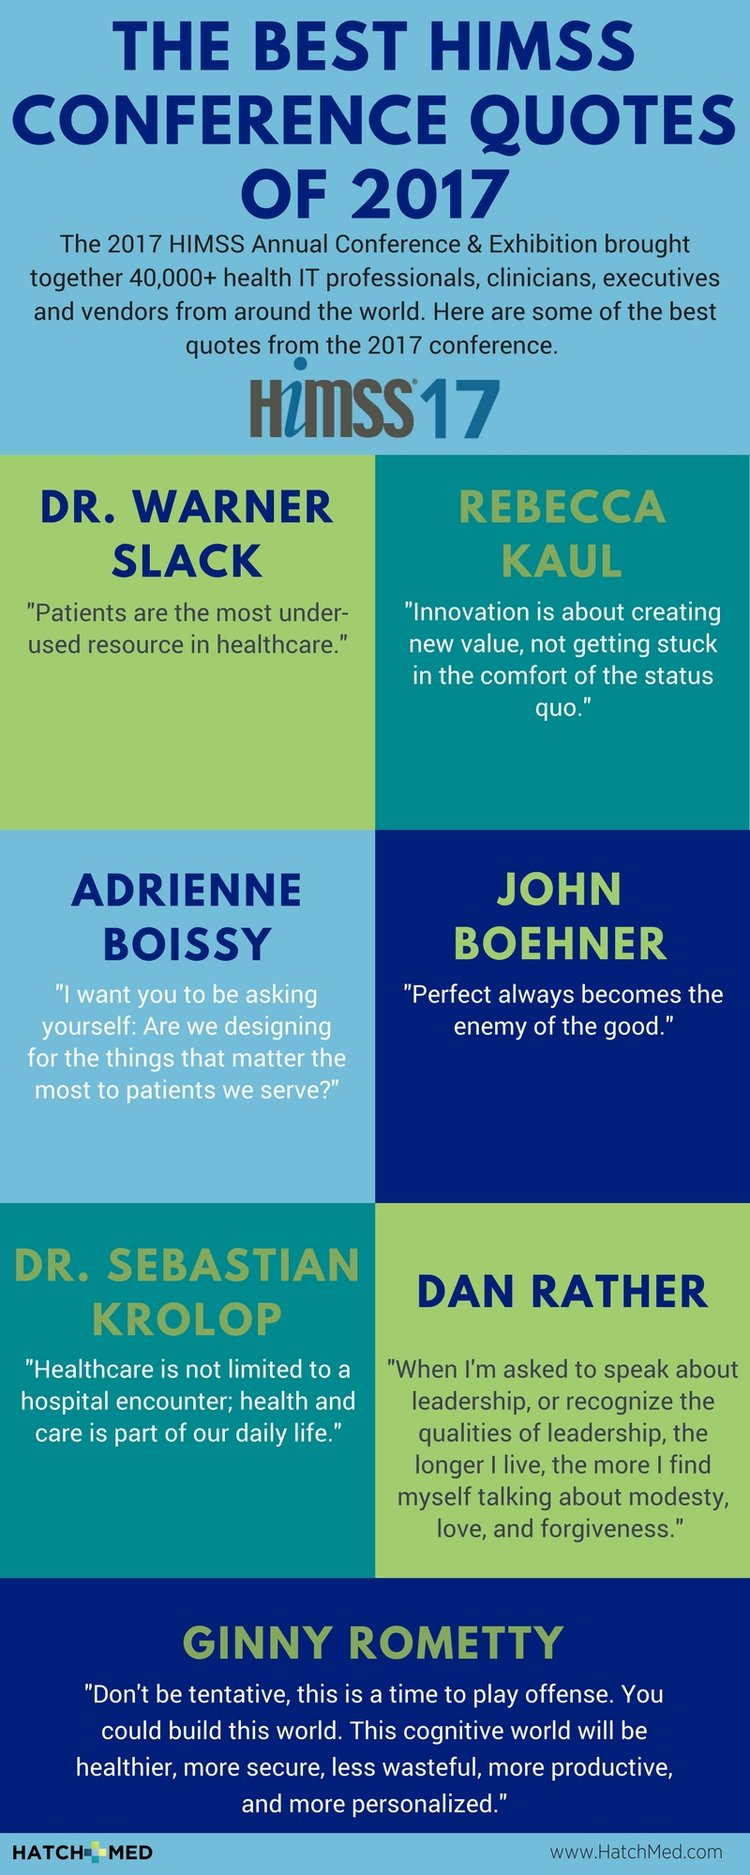 Healthcare Quotes The Best Himss Conference Quotes Of 2017 Infographic  Hatchmed